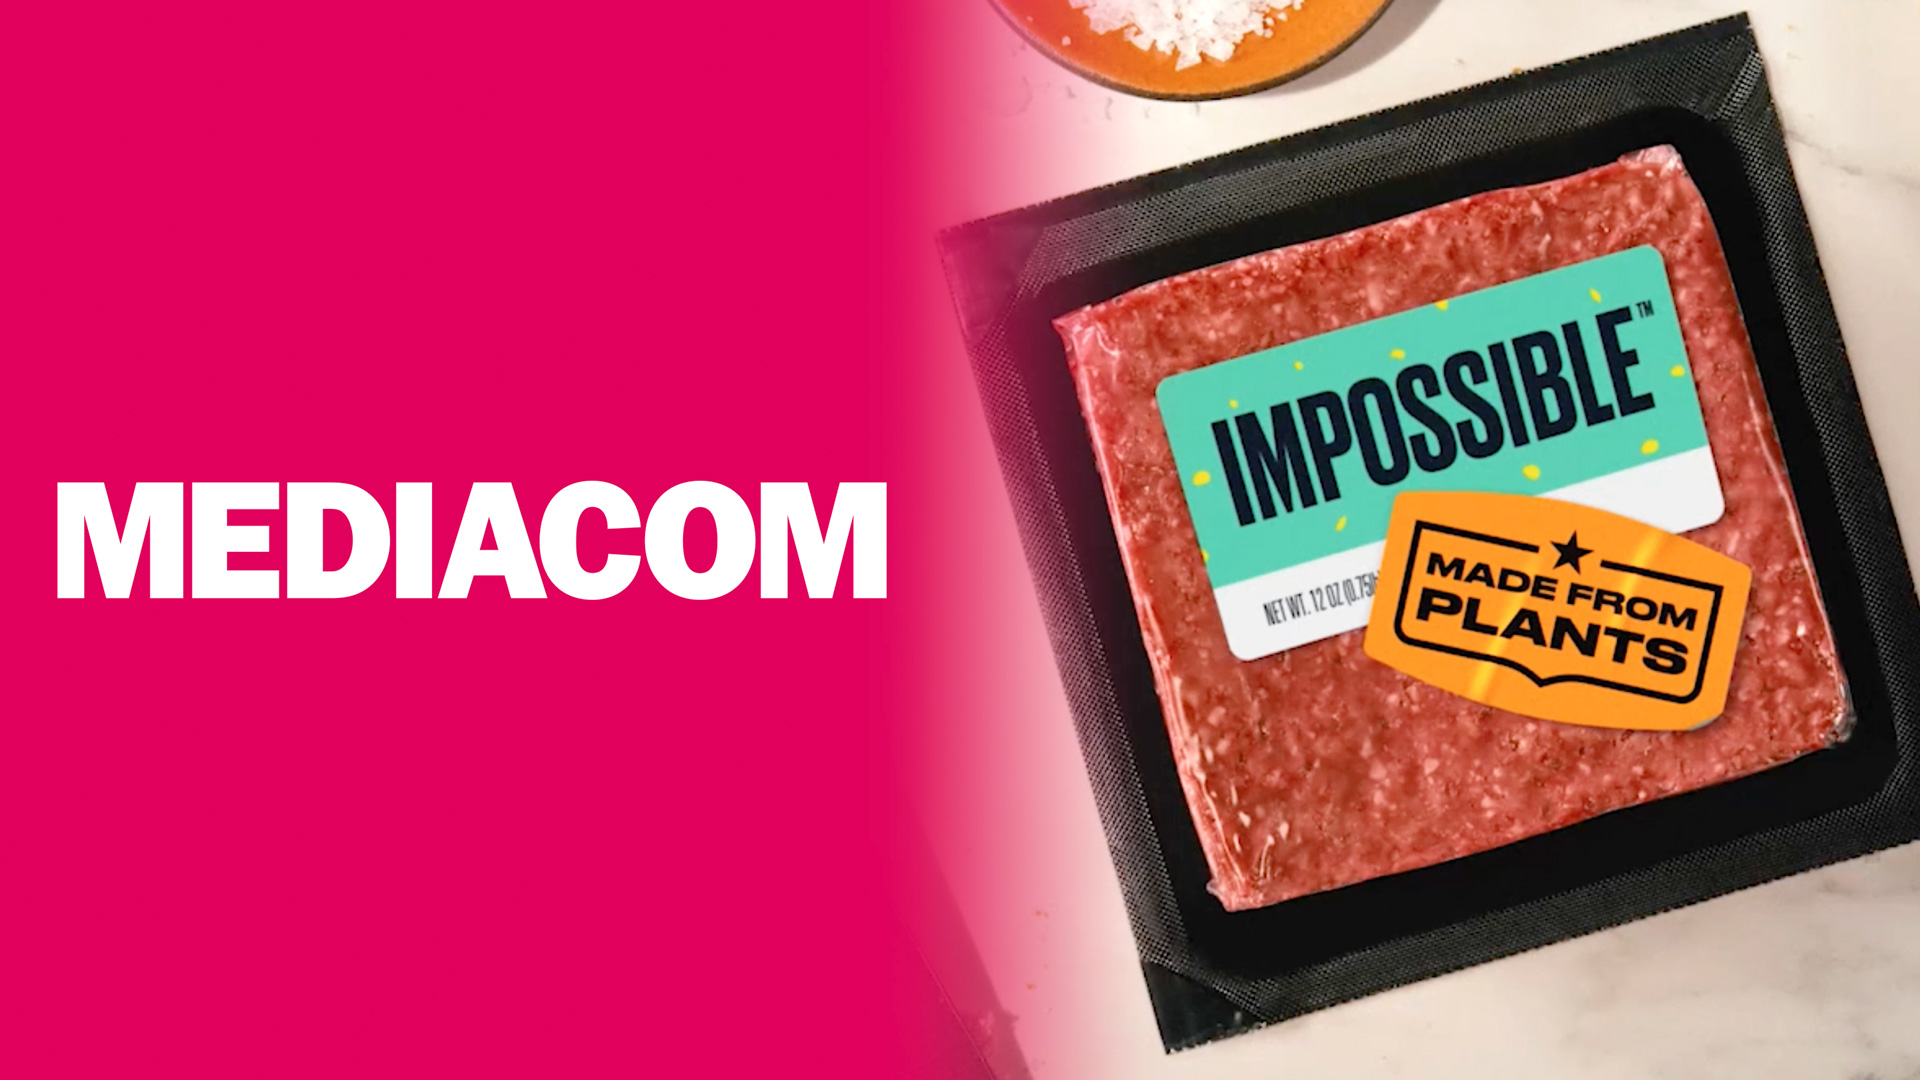 MediaCom and Impossible Foods logo